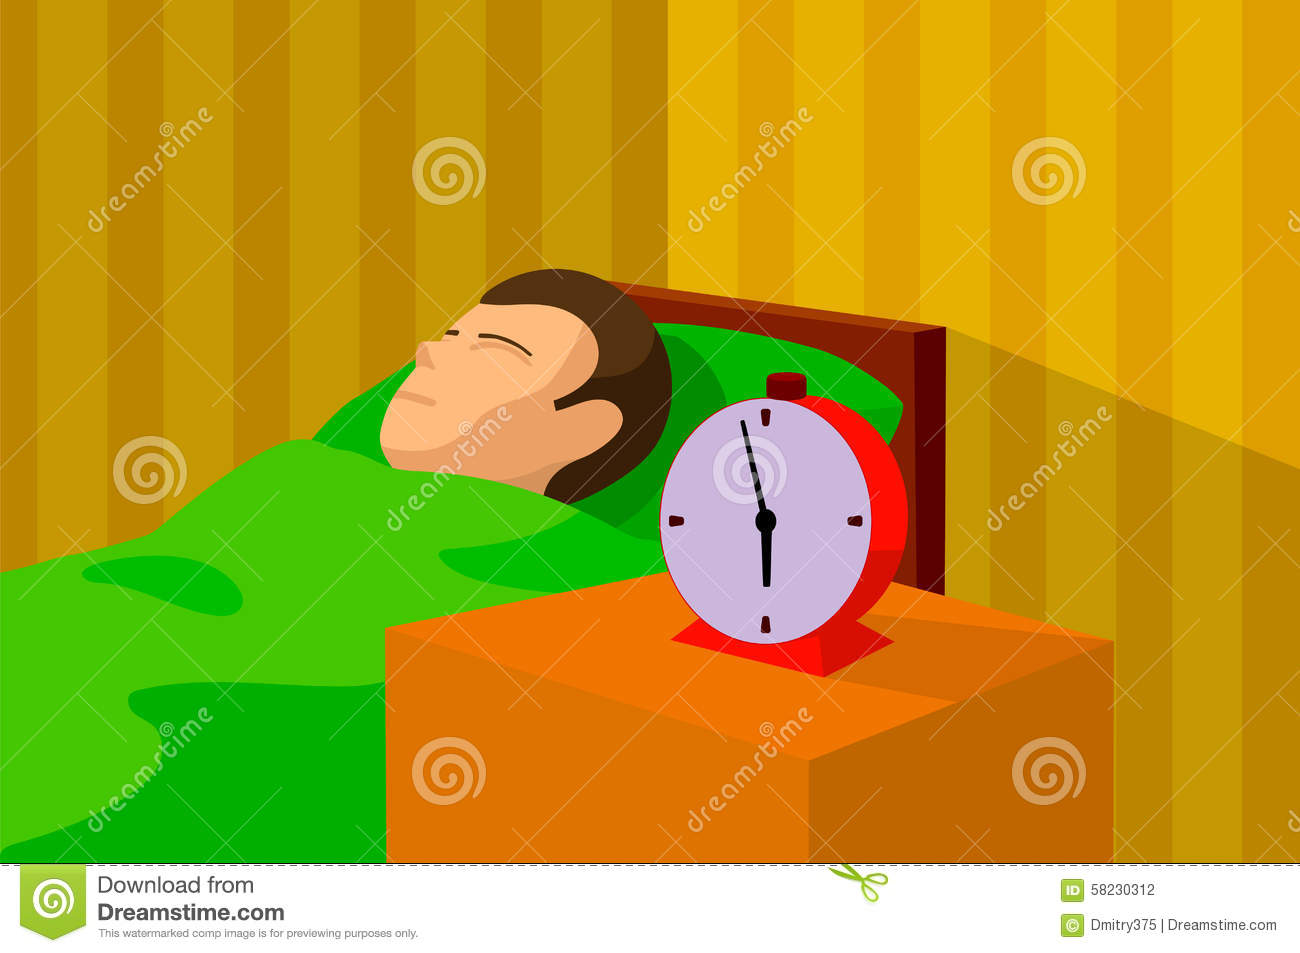 Cartoon Image Of A Man Sleeping In Bed With An Alarm clock